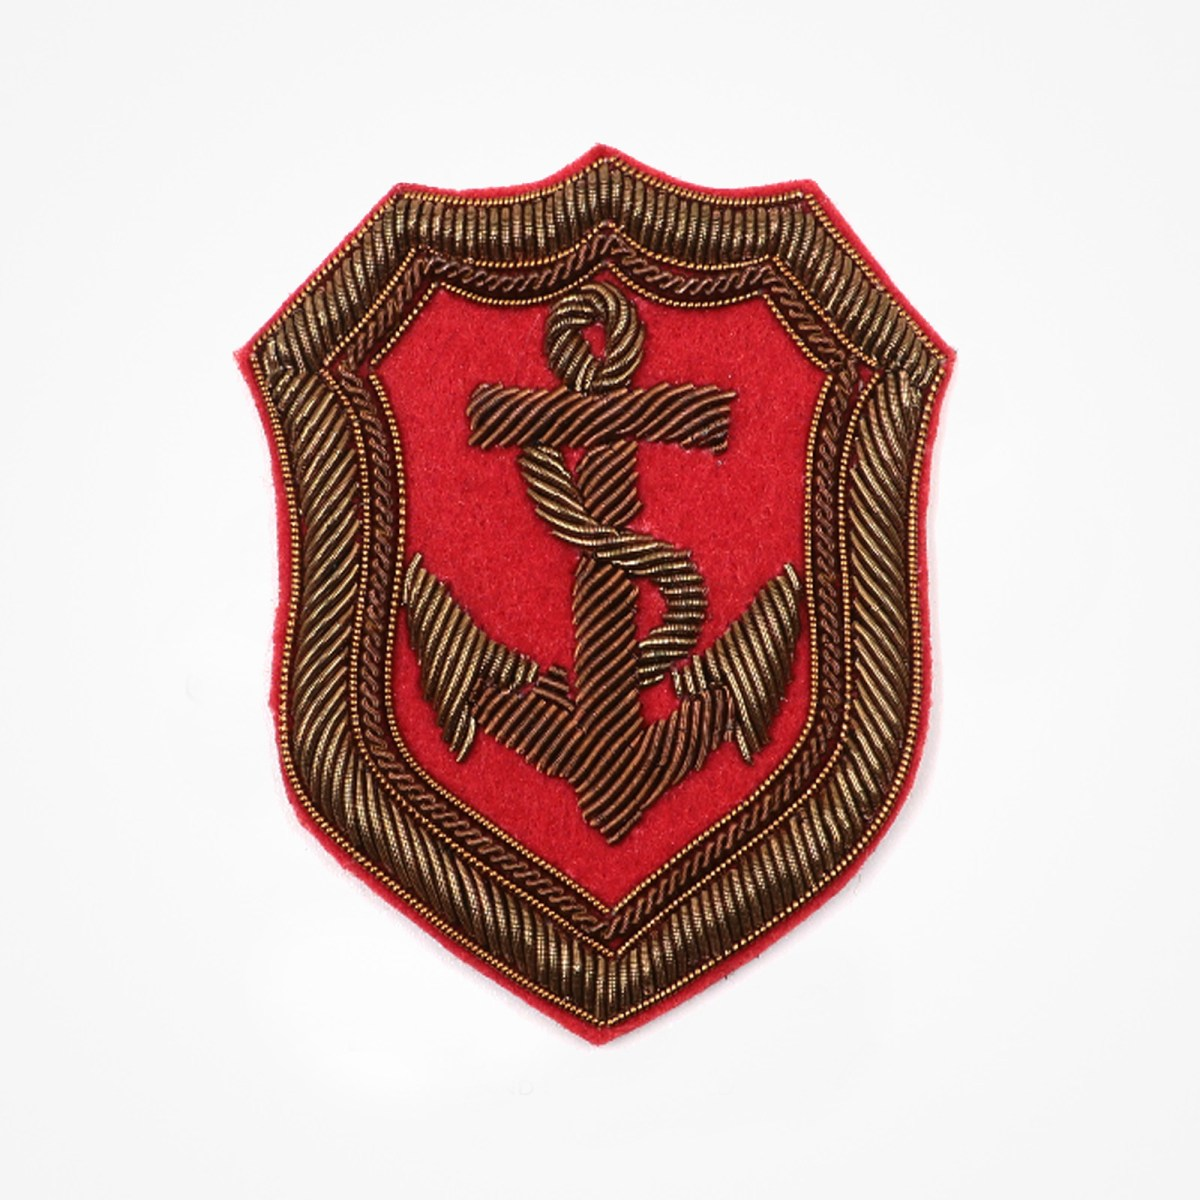 Anchor Shield - Anchor Shield Embroidered patch Fashionable 3D embroidered look Made by skilled artisans Bullion wire and silk thread hand Stitched on Black color Felt Available in gold and silver colors Size = 65mm height x 55mm width sew-on backing: Perfect for caps, sports jacket, leather jackets, blazer coat, Blazer Pocket, shirts uniforms, Accessories and many More Pin backing: easy to removable 4